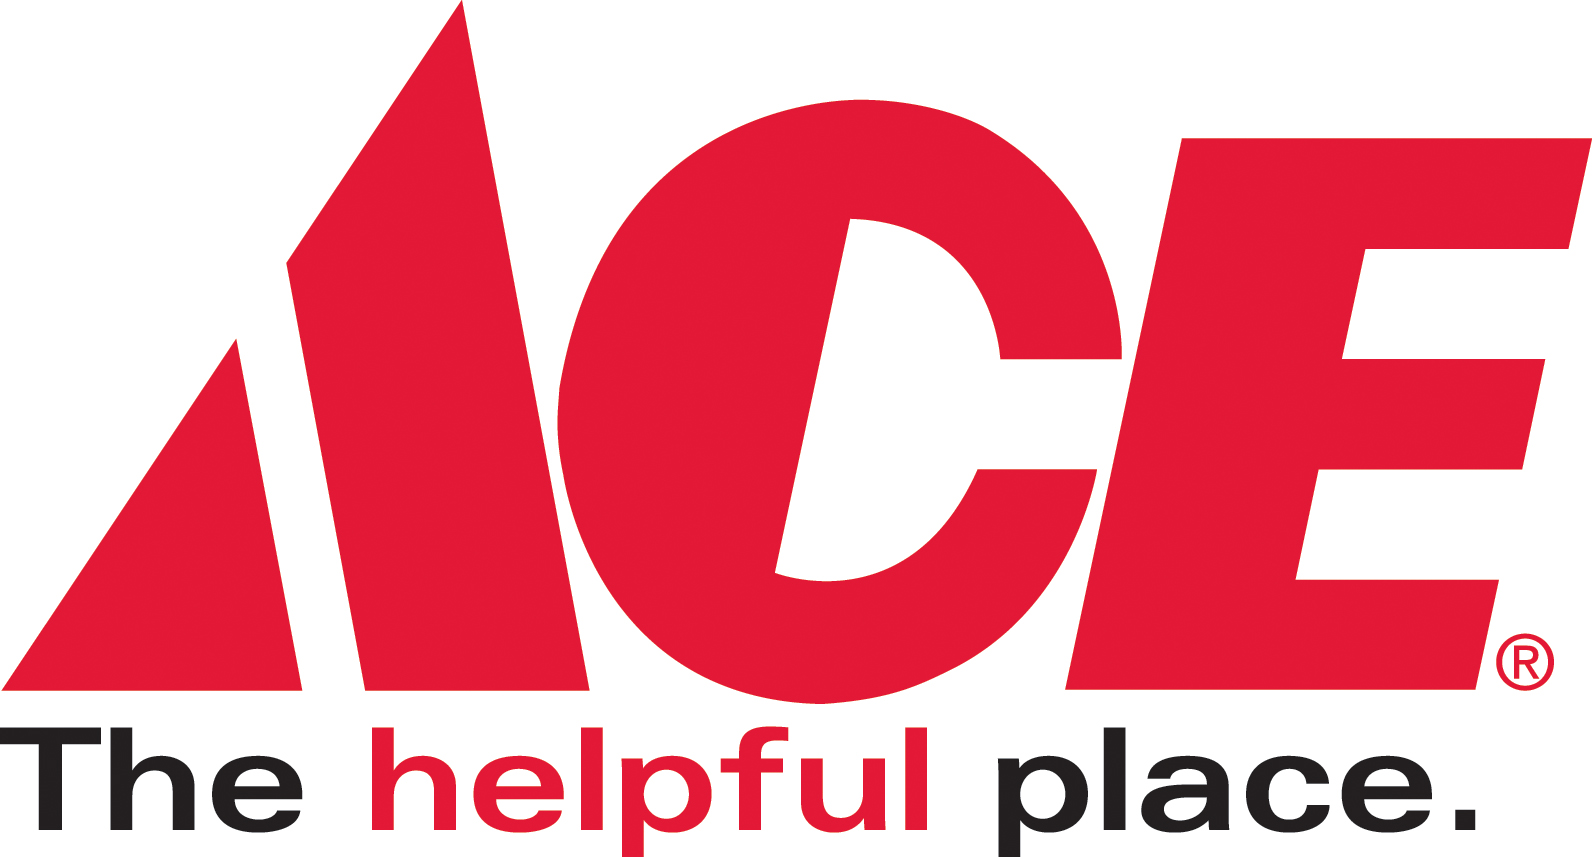 Ace hardware discount coupons